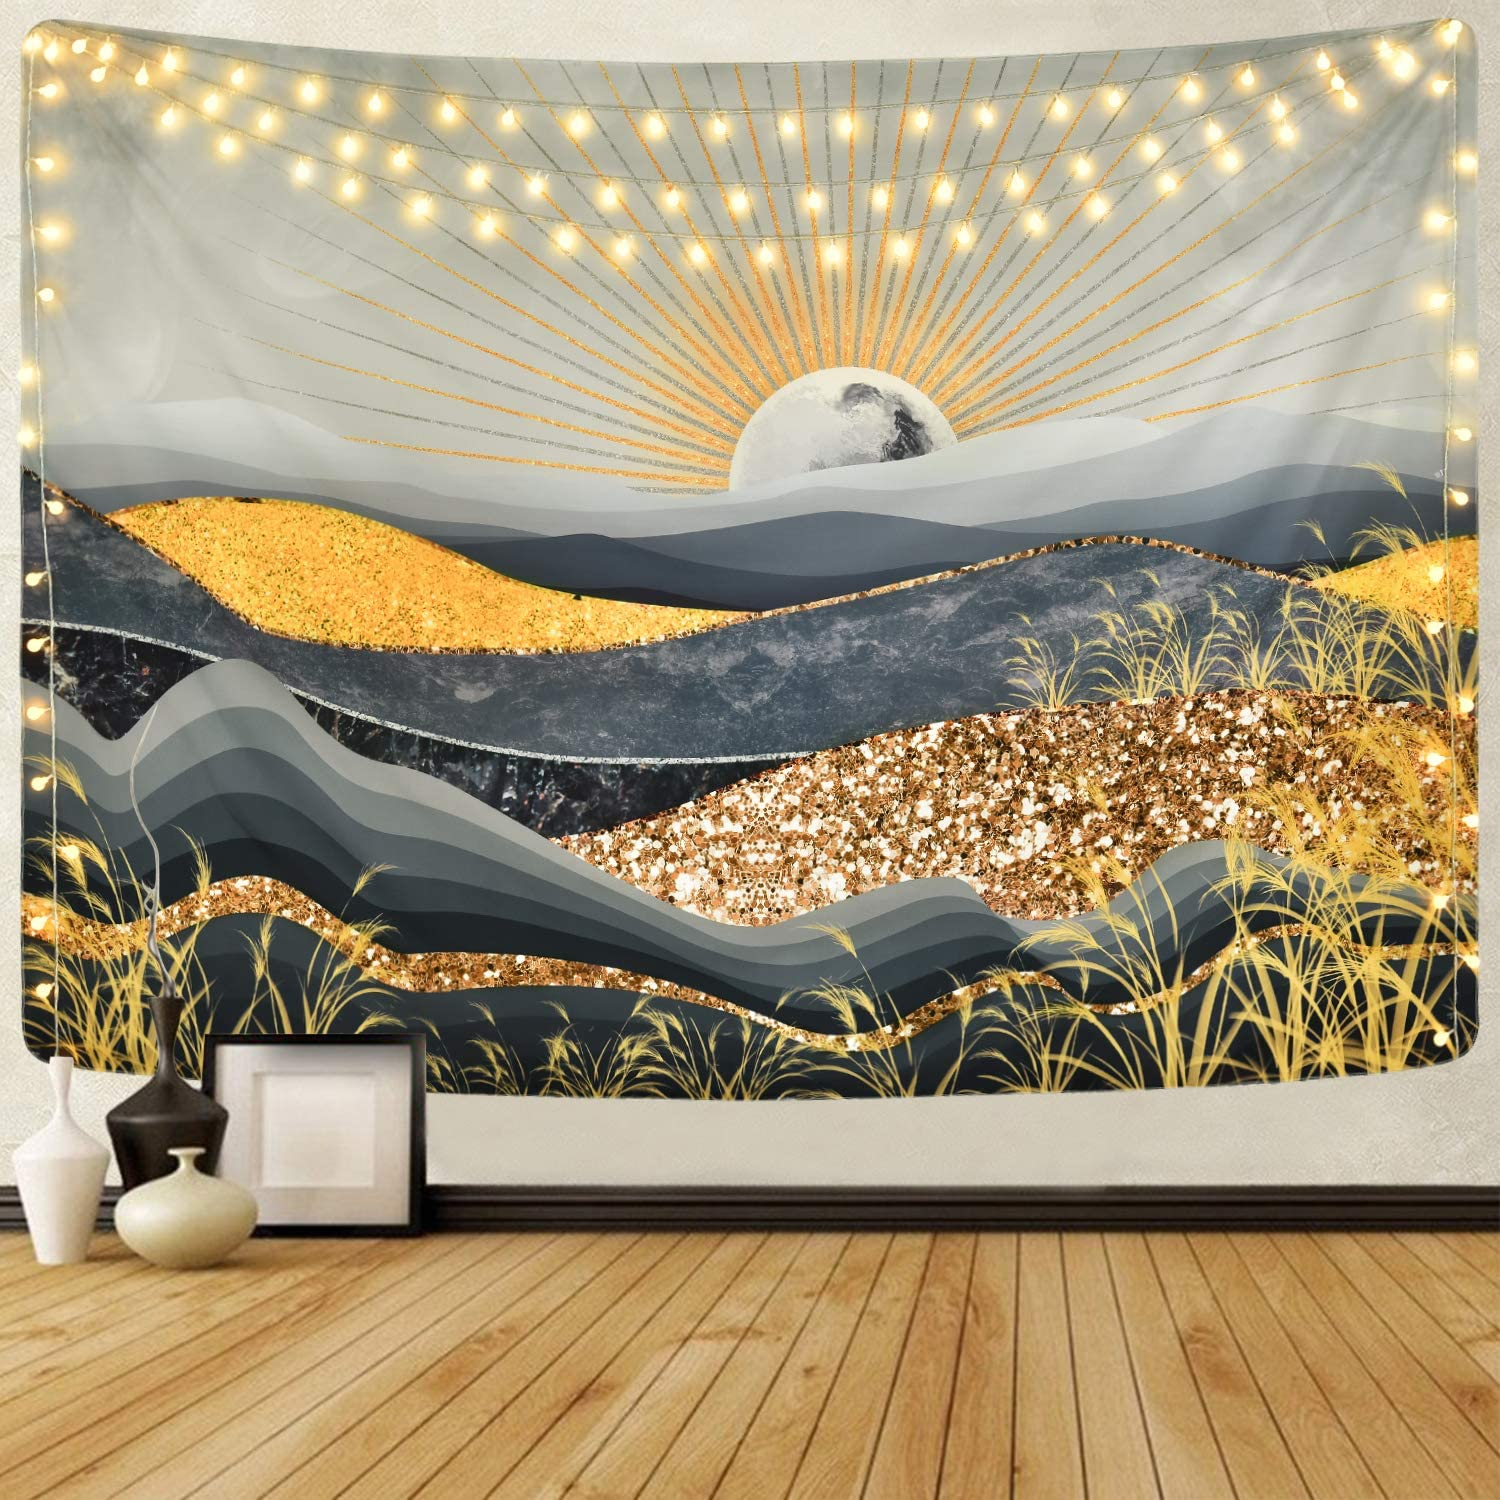 Alishomtll Mountain Tapestry Gold Grey Art Tapestry Shining Sun Tapestry Abstract Nature Landscape Tapestry for Room (59.1 x 82.7 inches)